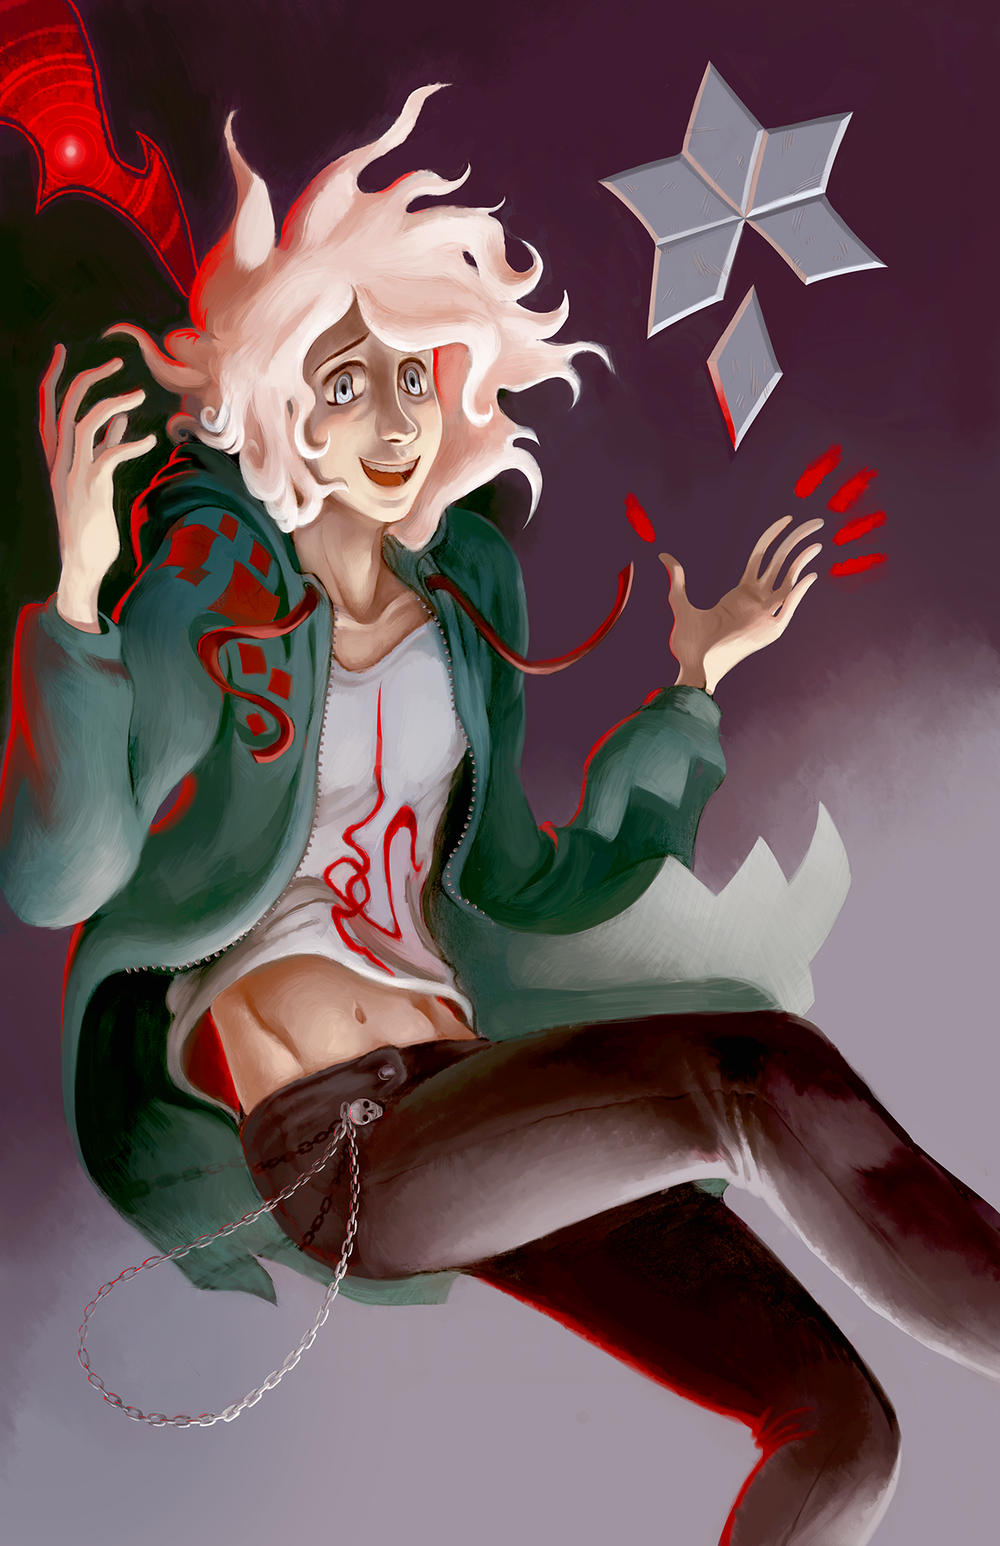 komaeda tribute